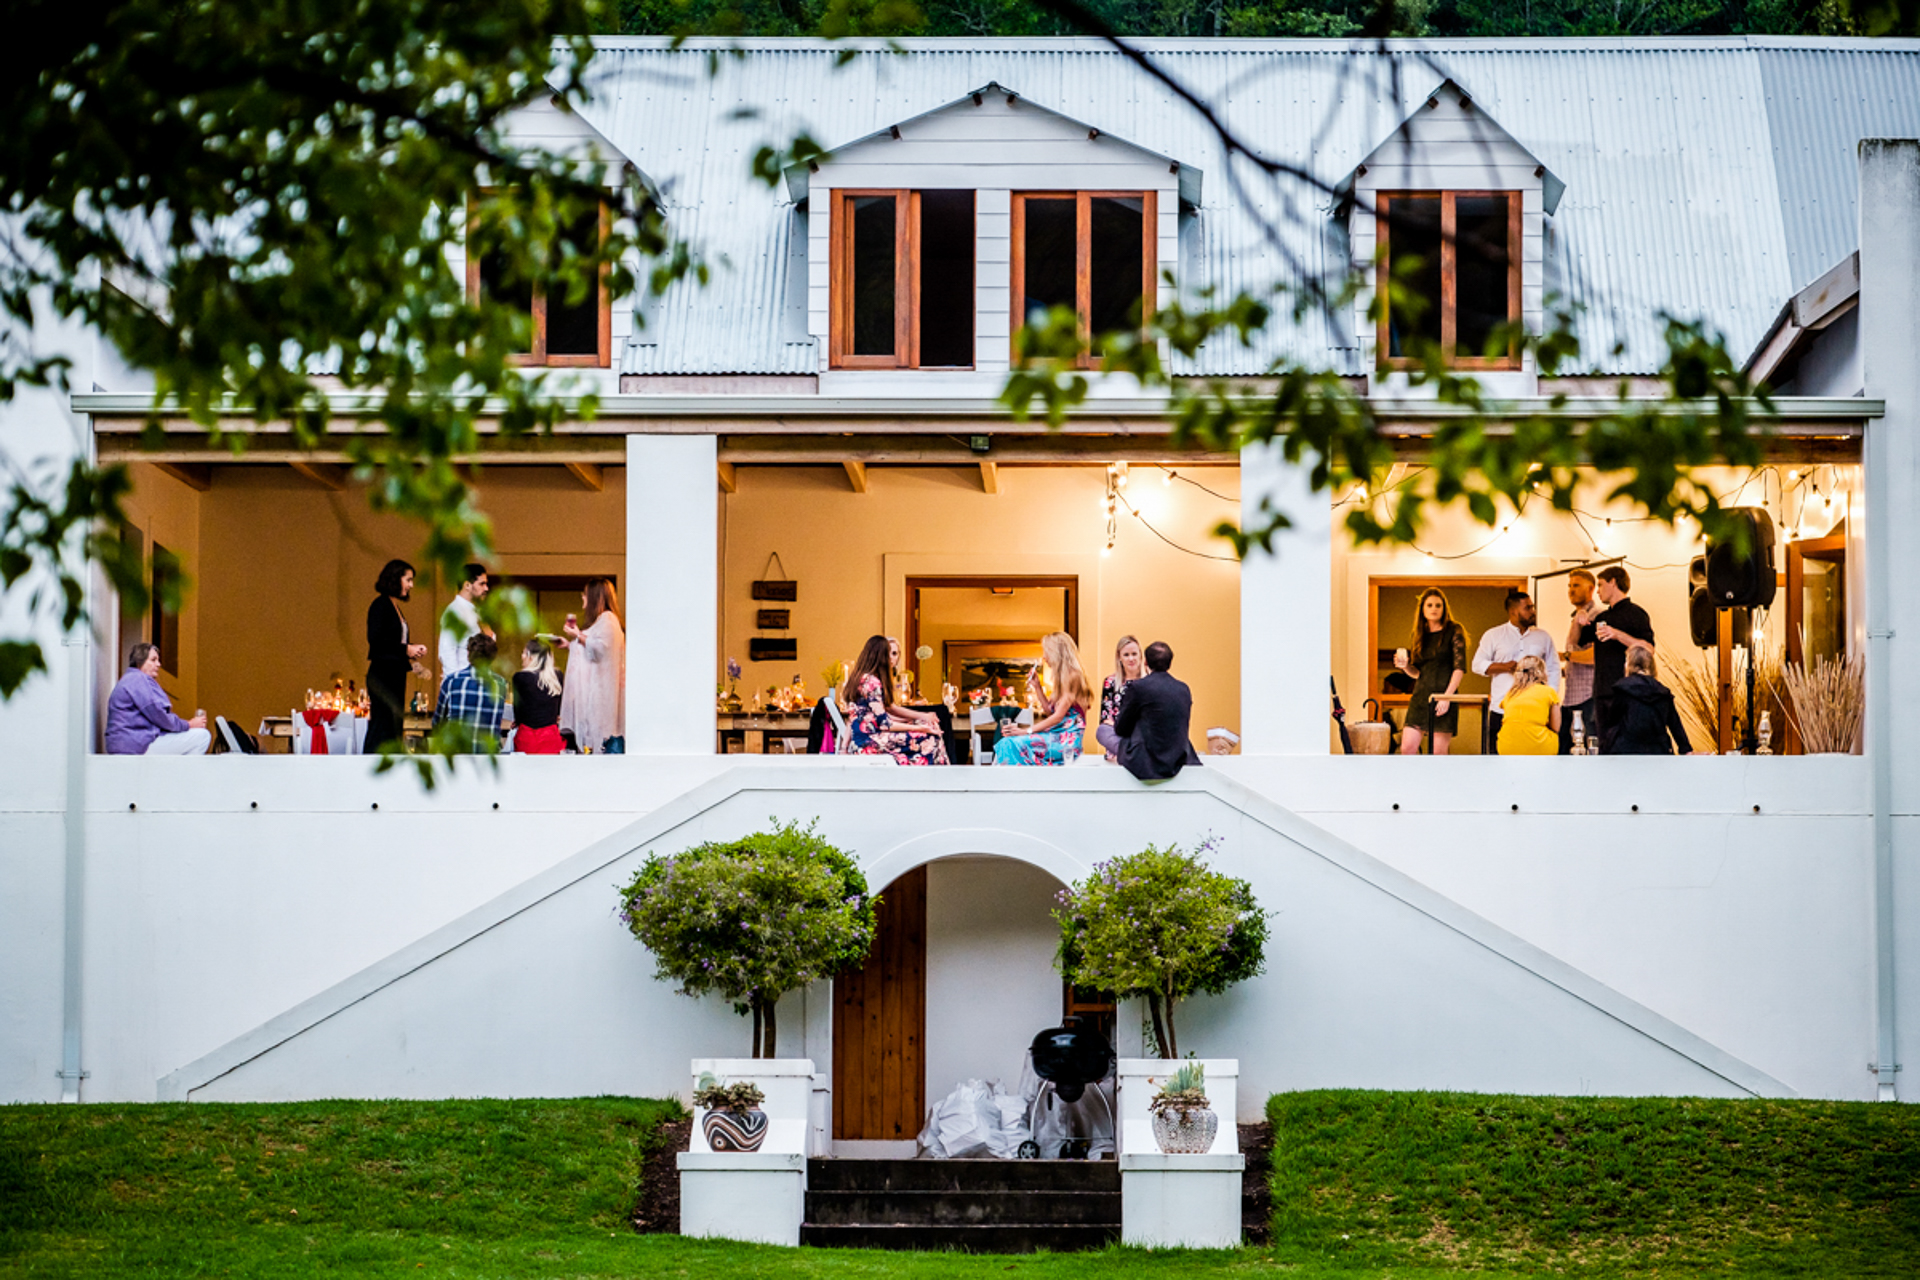 Overberg, SA Wedding Photography | The guests enjoying pre-drinks at the stunning 1800's styled farmhouse